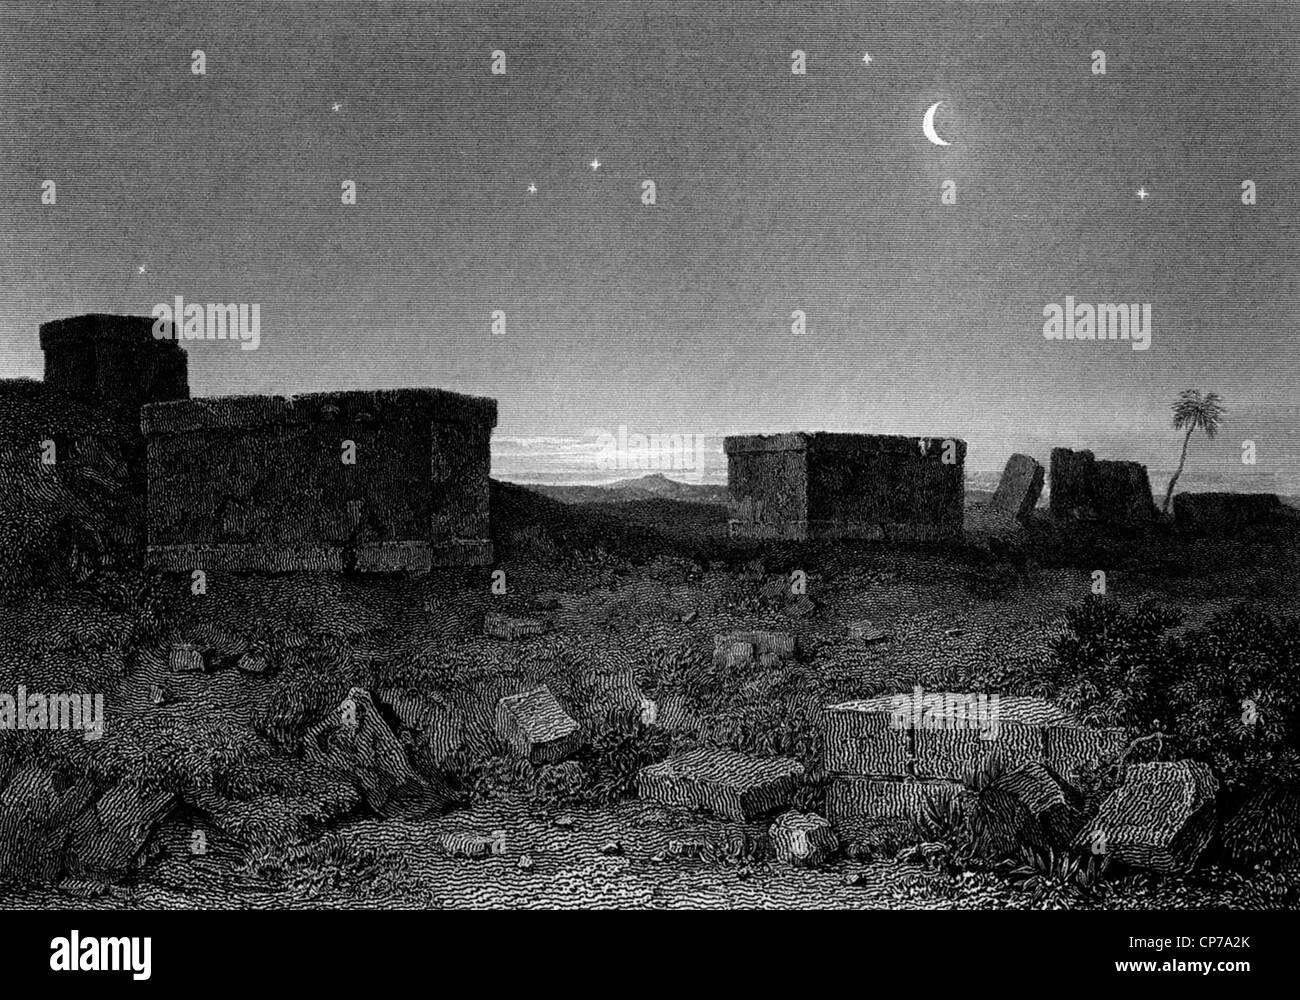 Ancient Greek Sarcophagus on plains of Plataea or Plataeae at night. - Stock Image